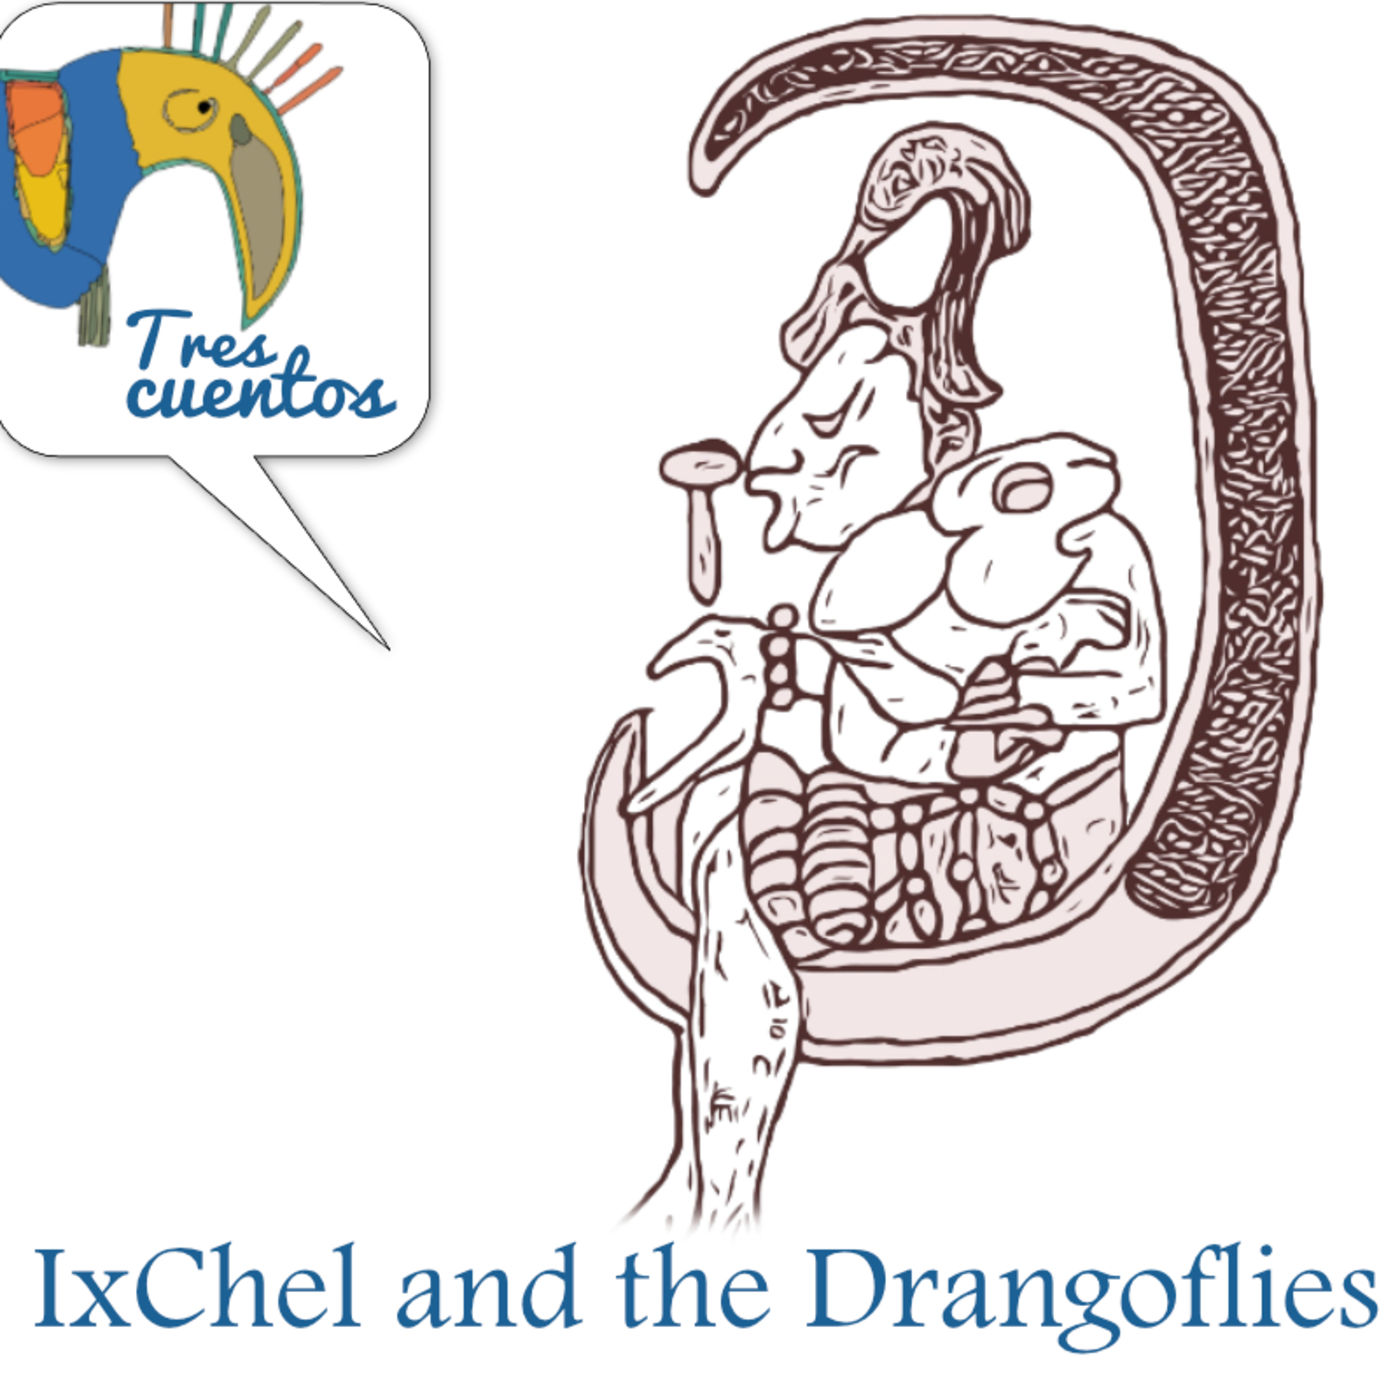 6- Mythology - IxChel and the Dragonflies - Maya/Guatemala